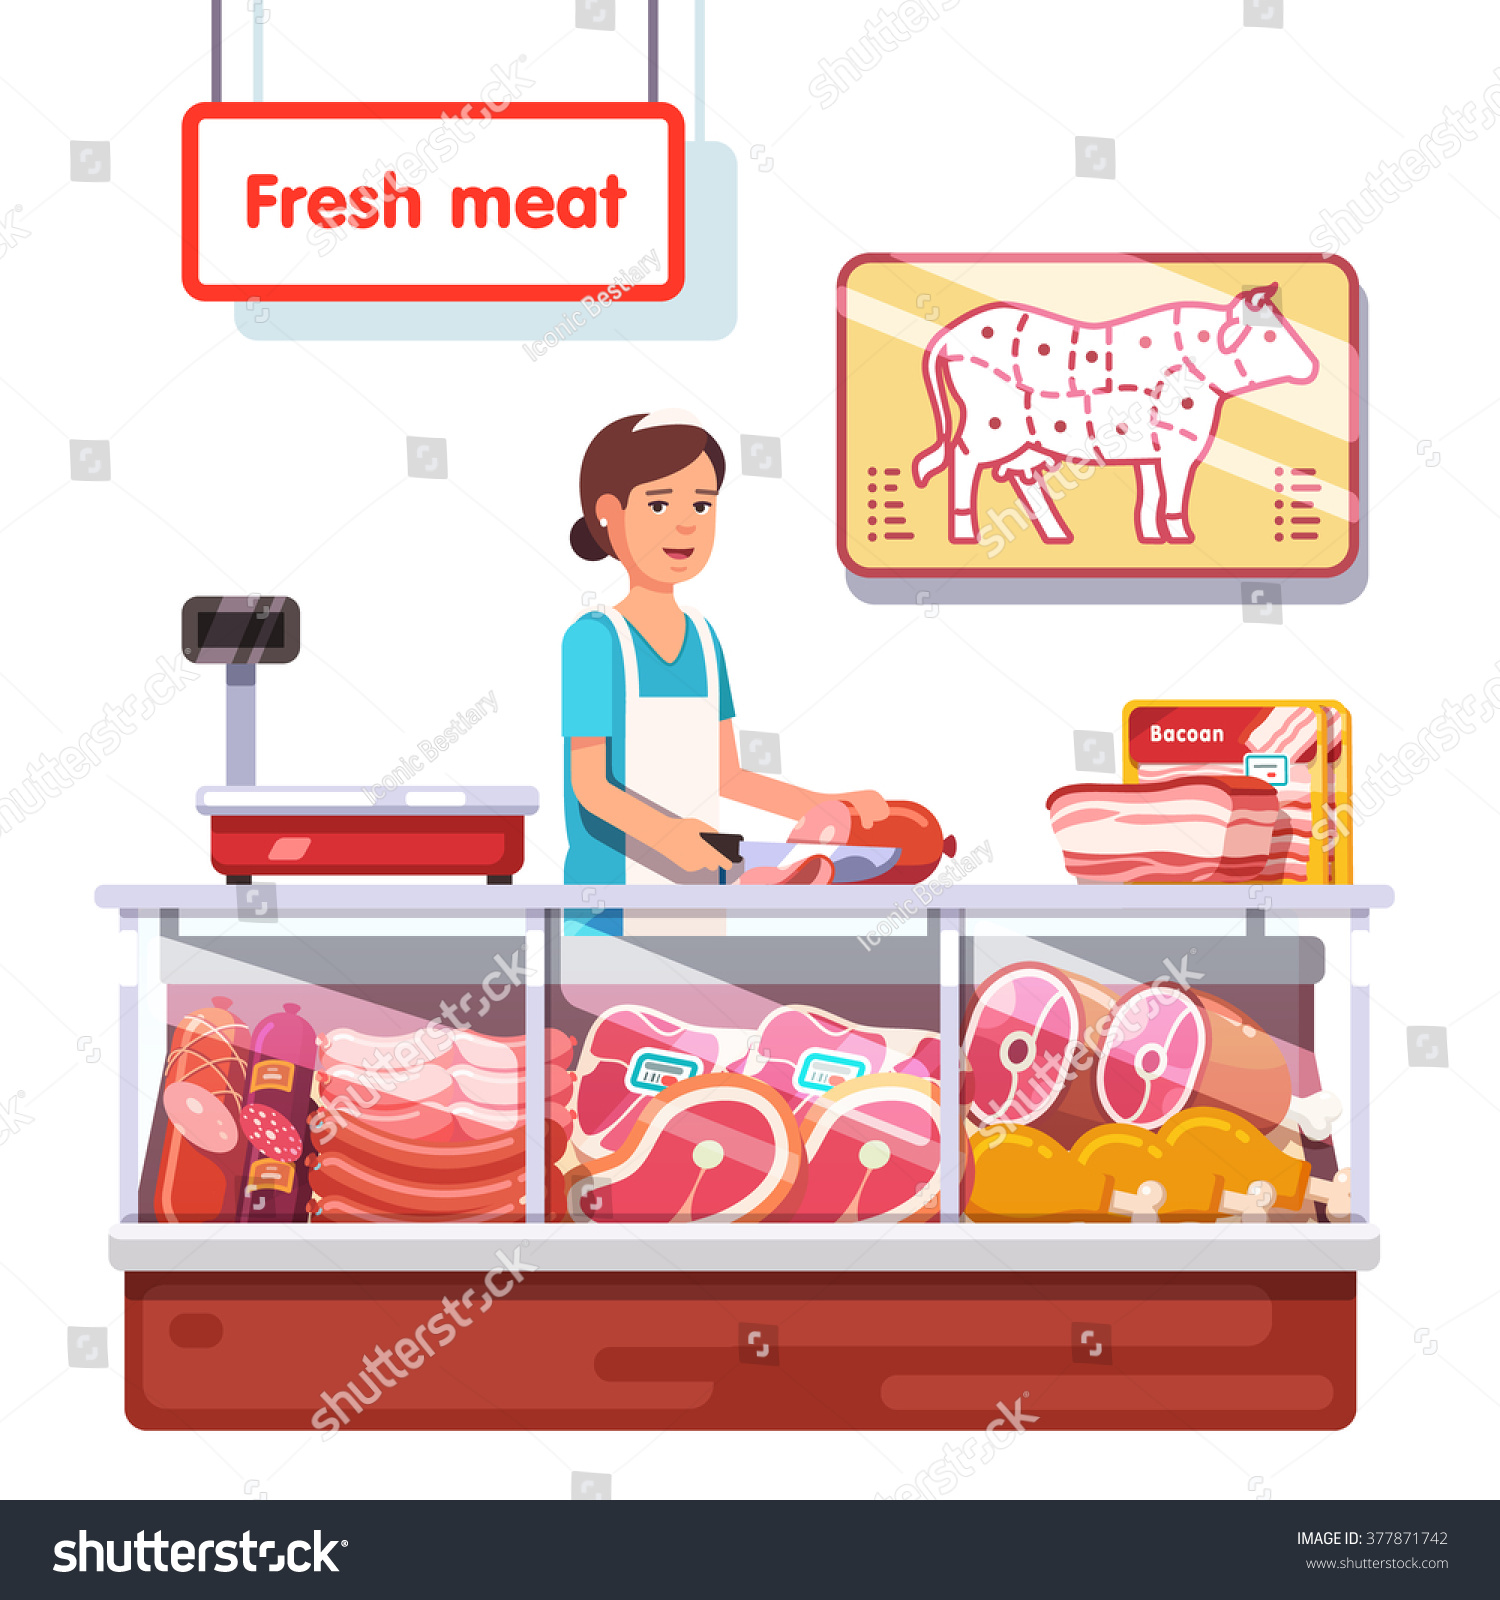 fresh meat stand supermarket s clerk stock vector  fresh meat stand in a supermarket s clerk w worker slicing meat modern flat